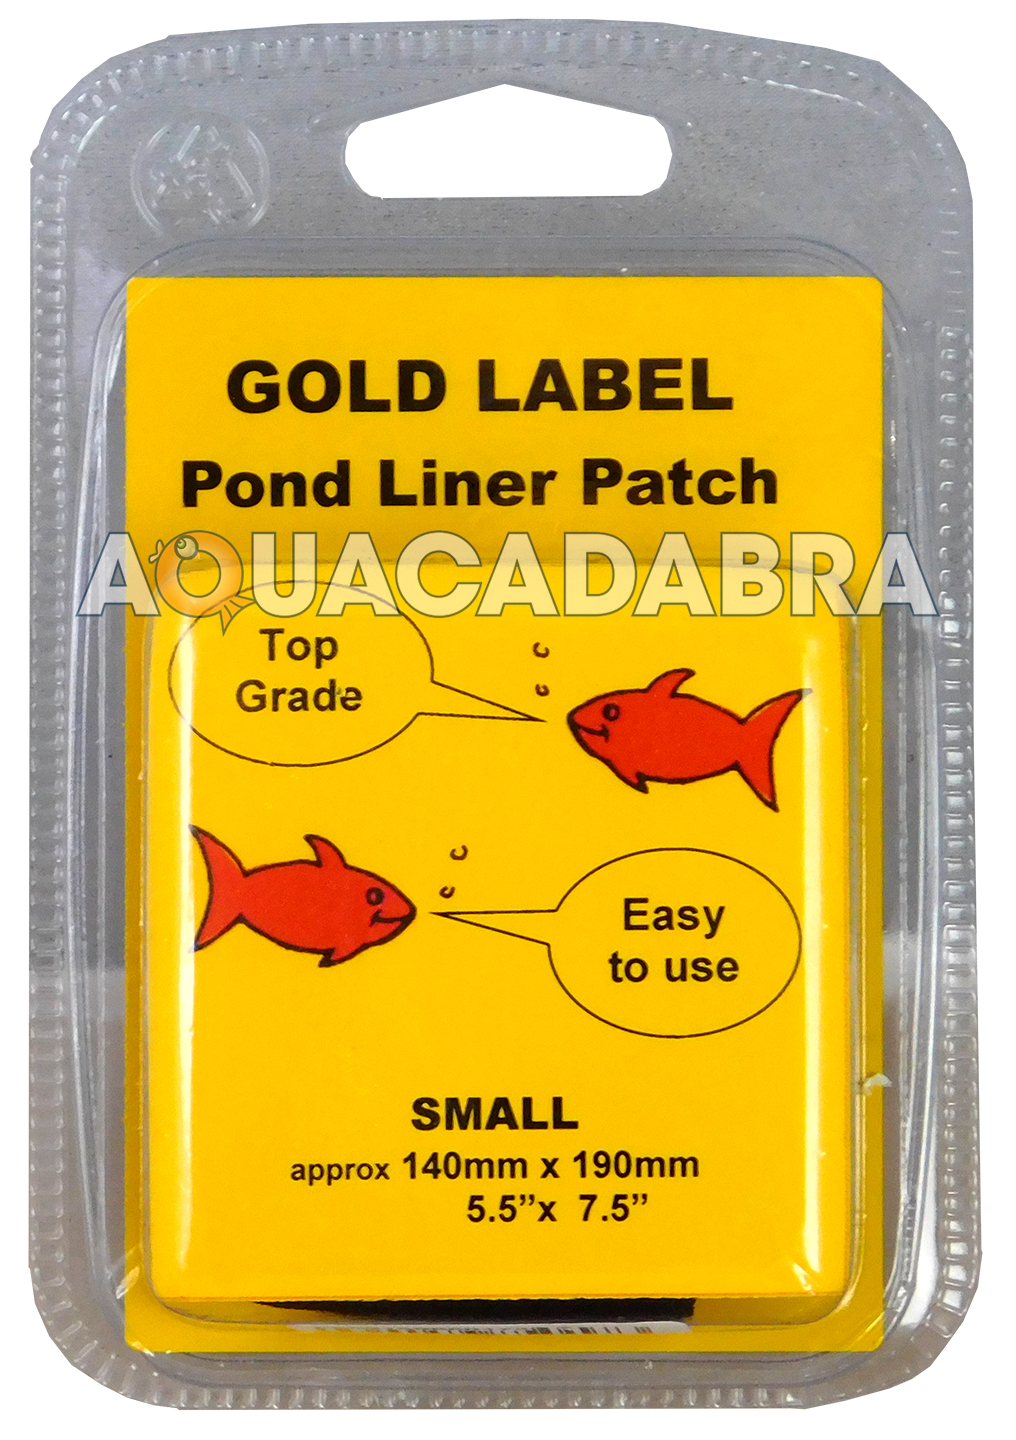 Details about GOLD LABEL ONE SHOT CLEAR BLACK UNDERWATER SEALANT POND LINER  PATCH AQUARIUM